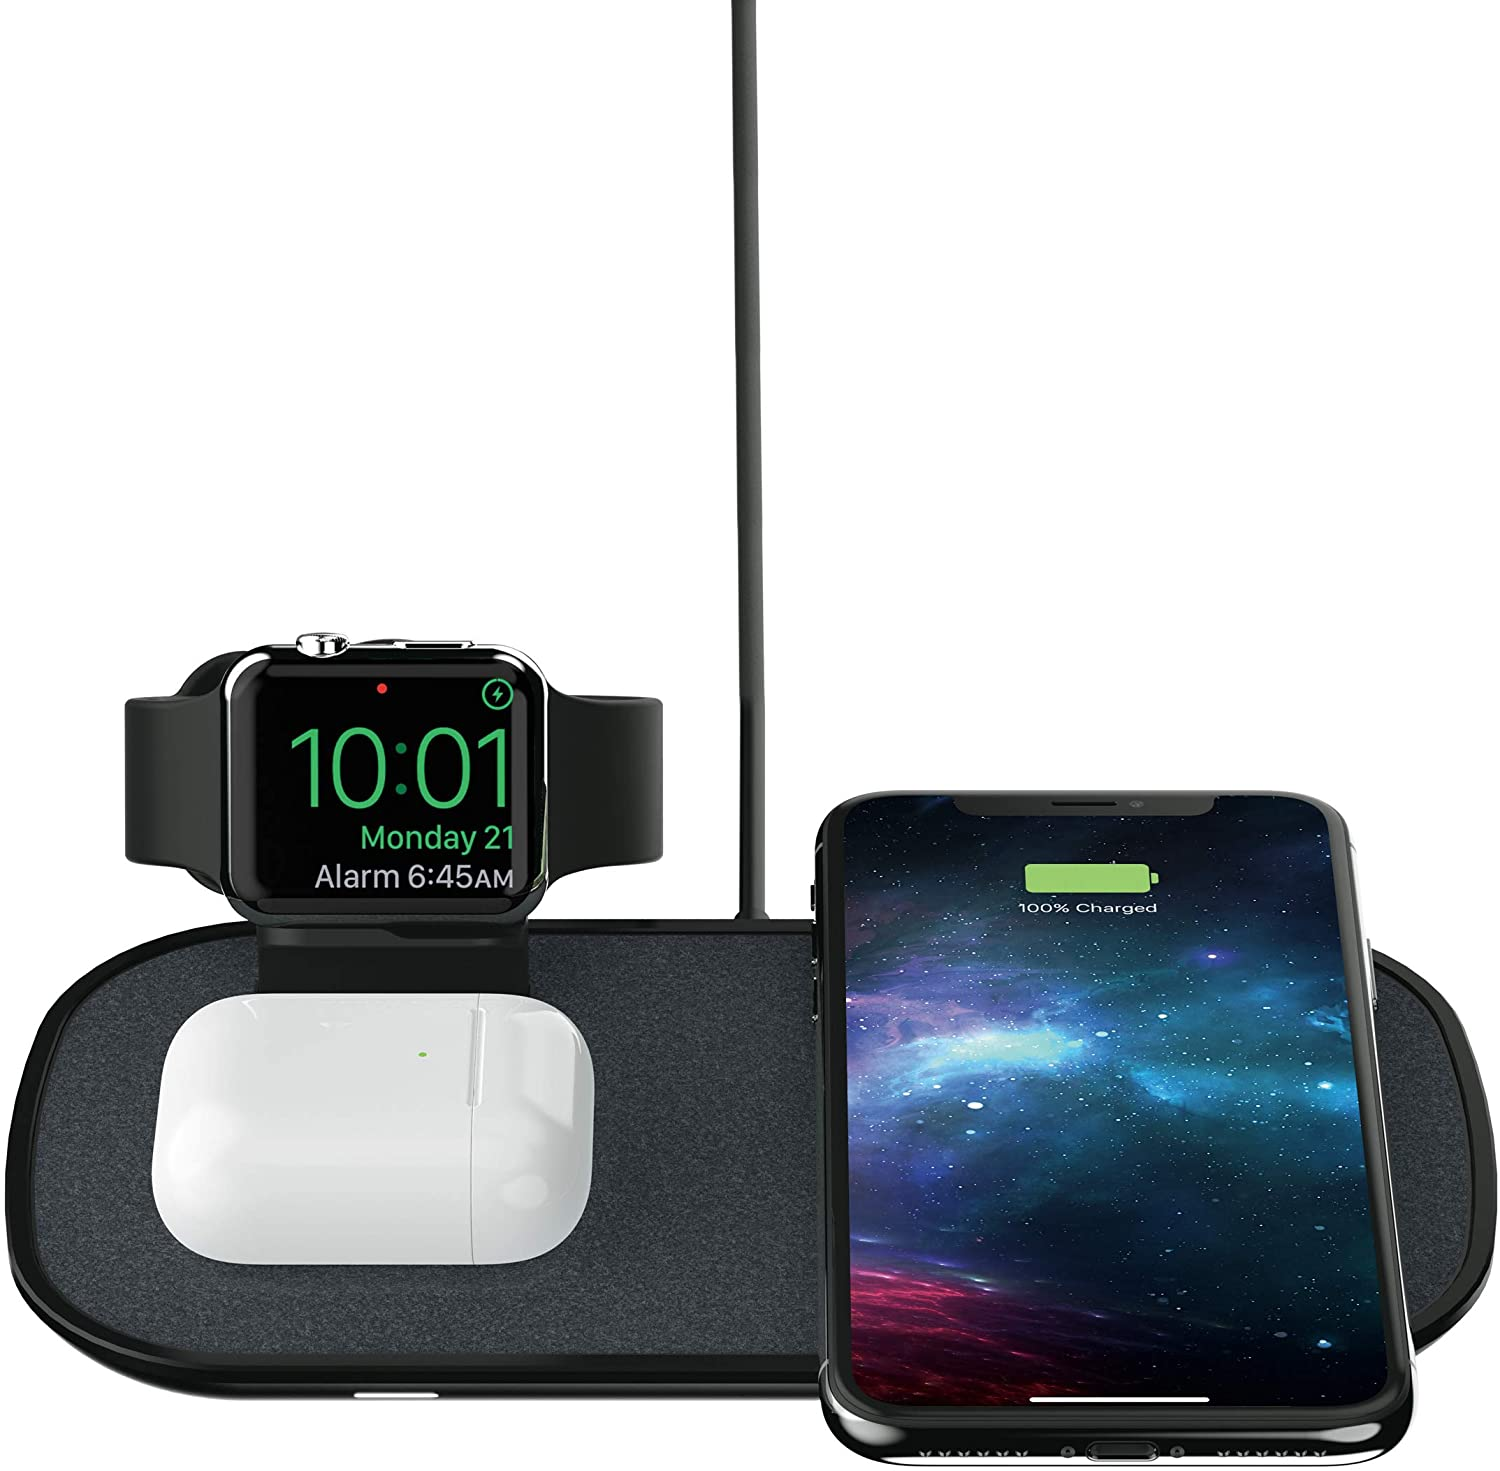 The Best Wireless Chargers For Your Iphone Airpods And Apple Watch,Ina Garten Beef Tenderloin Steak